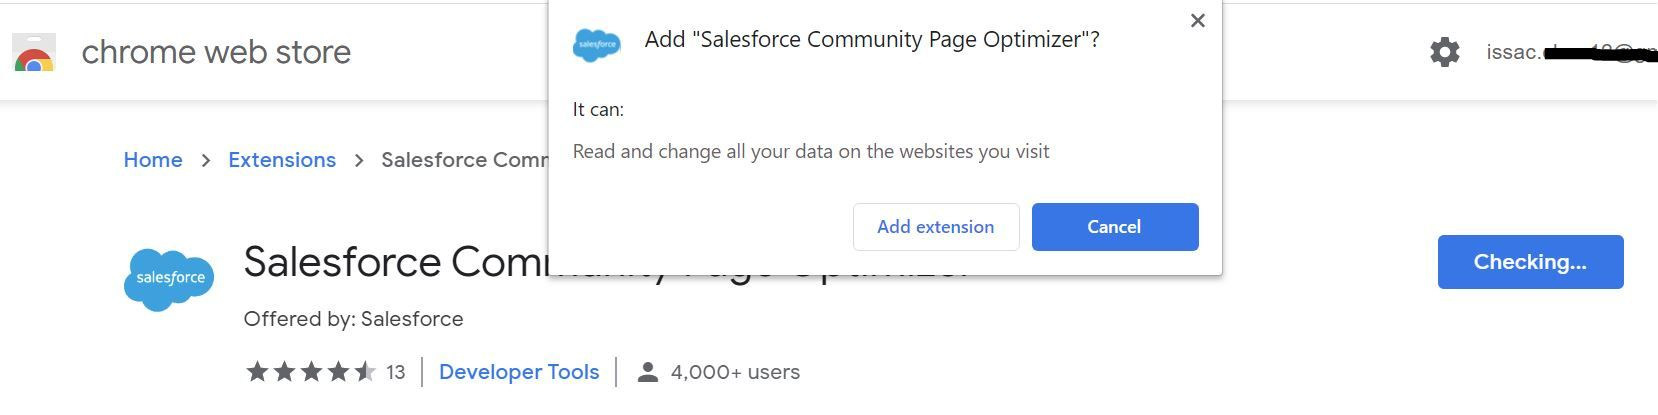 salesforce-community-page-optimizer-extension